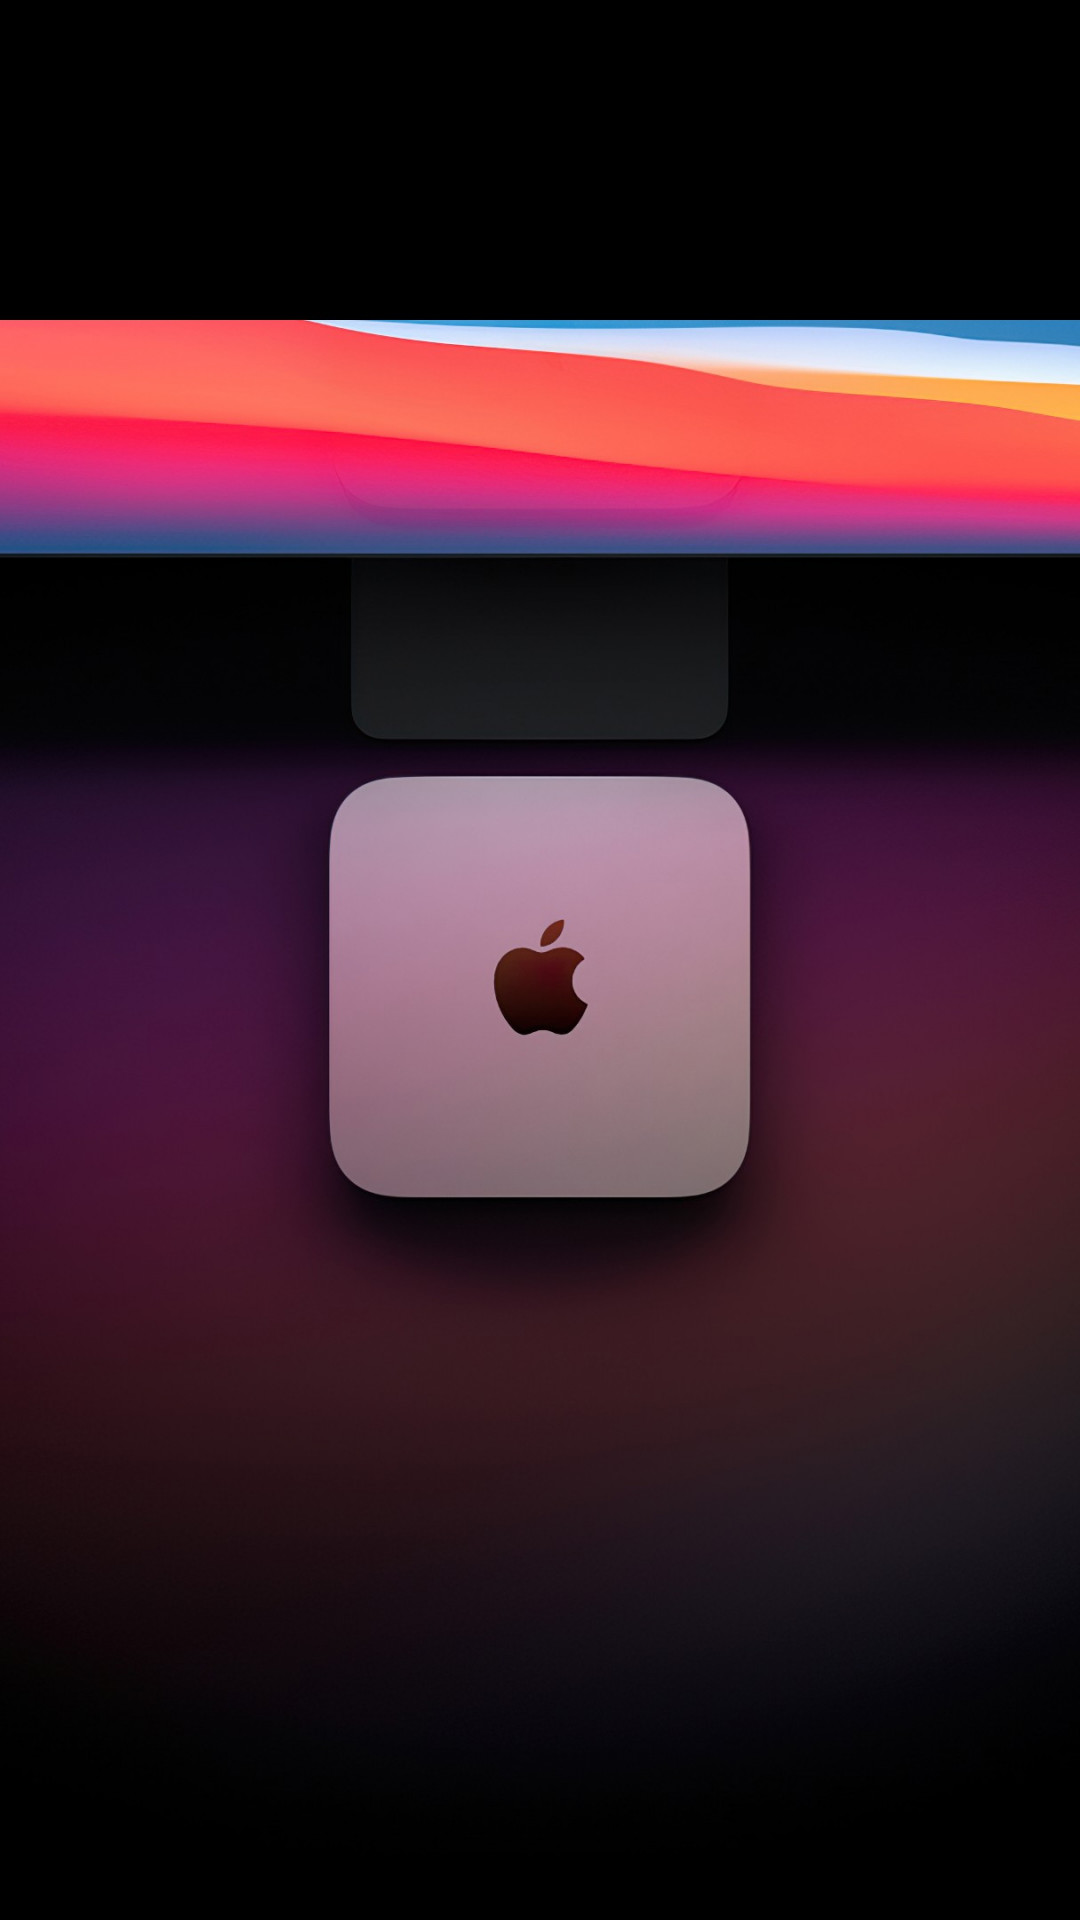 Mac Mini wallpaper 1080x1920